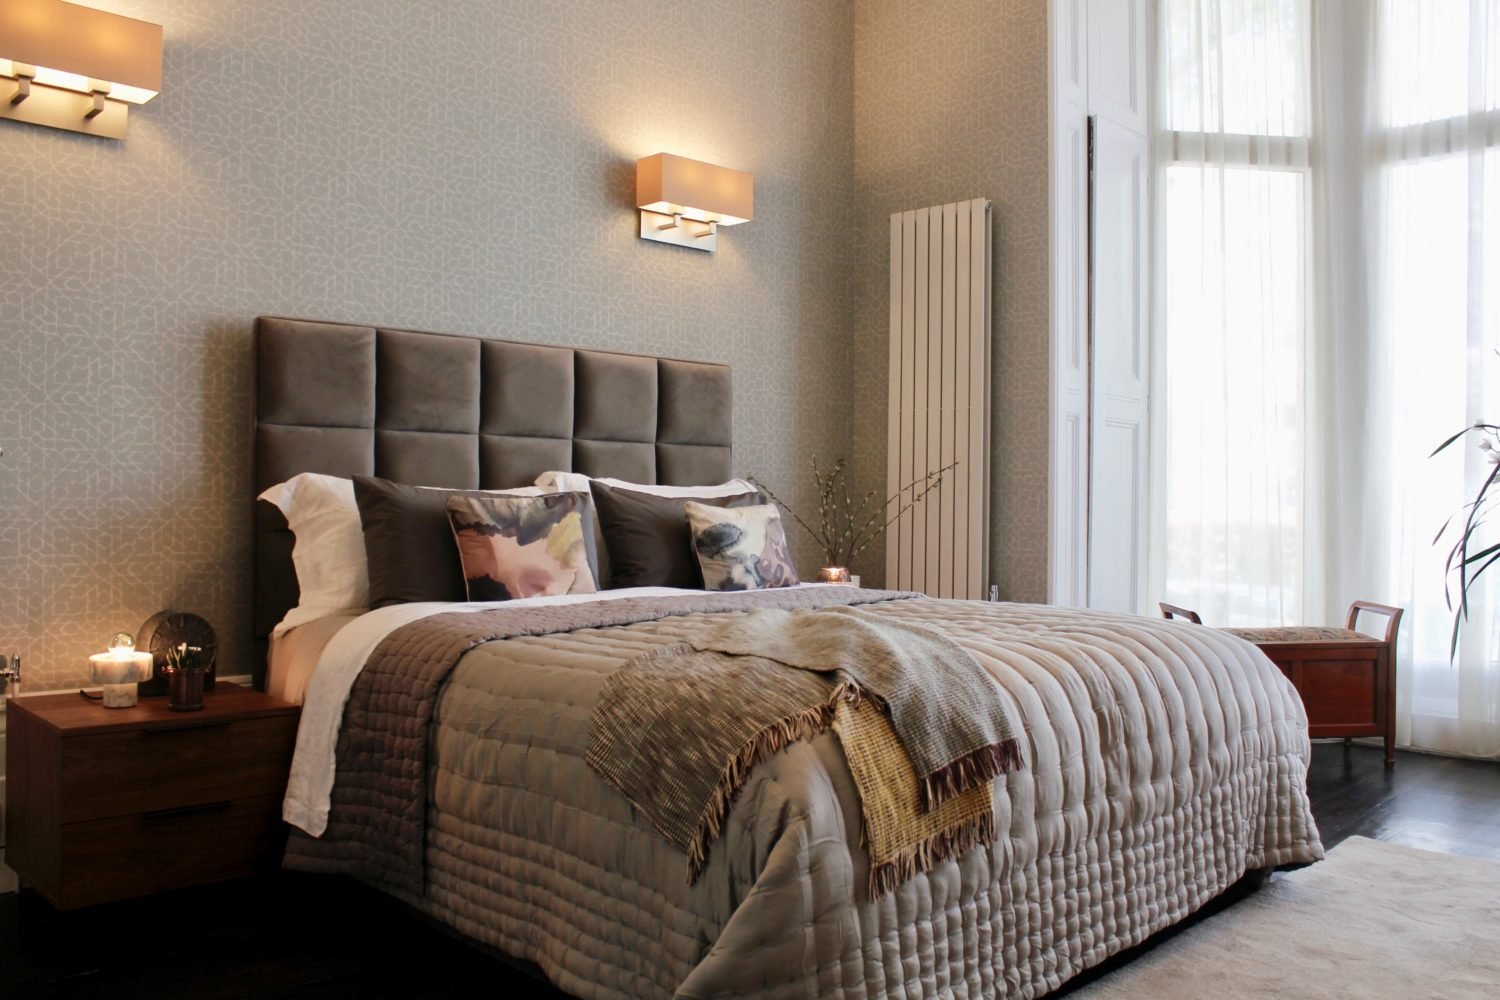 Interior Design Portfolio from NW3 Interiors - Belsize Park - Master Bedroom Design Hampstead